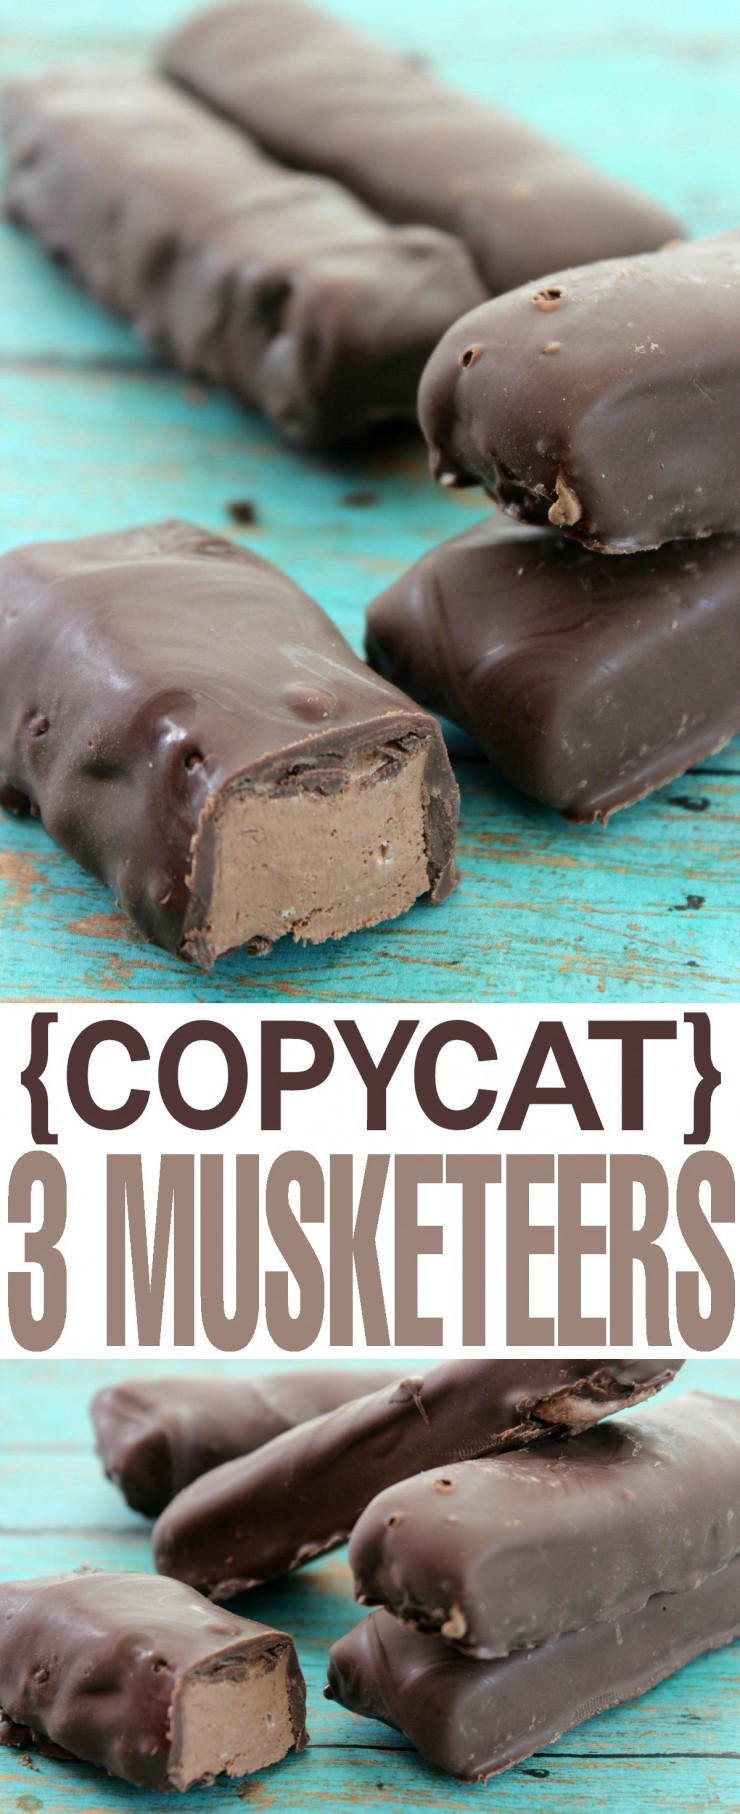 This copycat 3 musketeers recipe uses only 2 ingredients but tastes like the real thing!